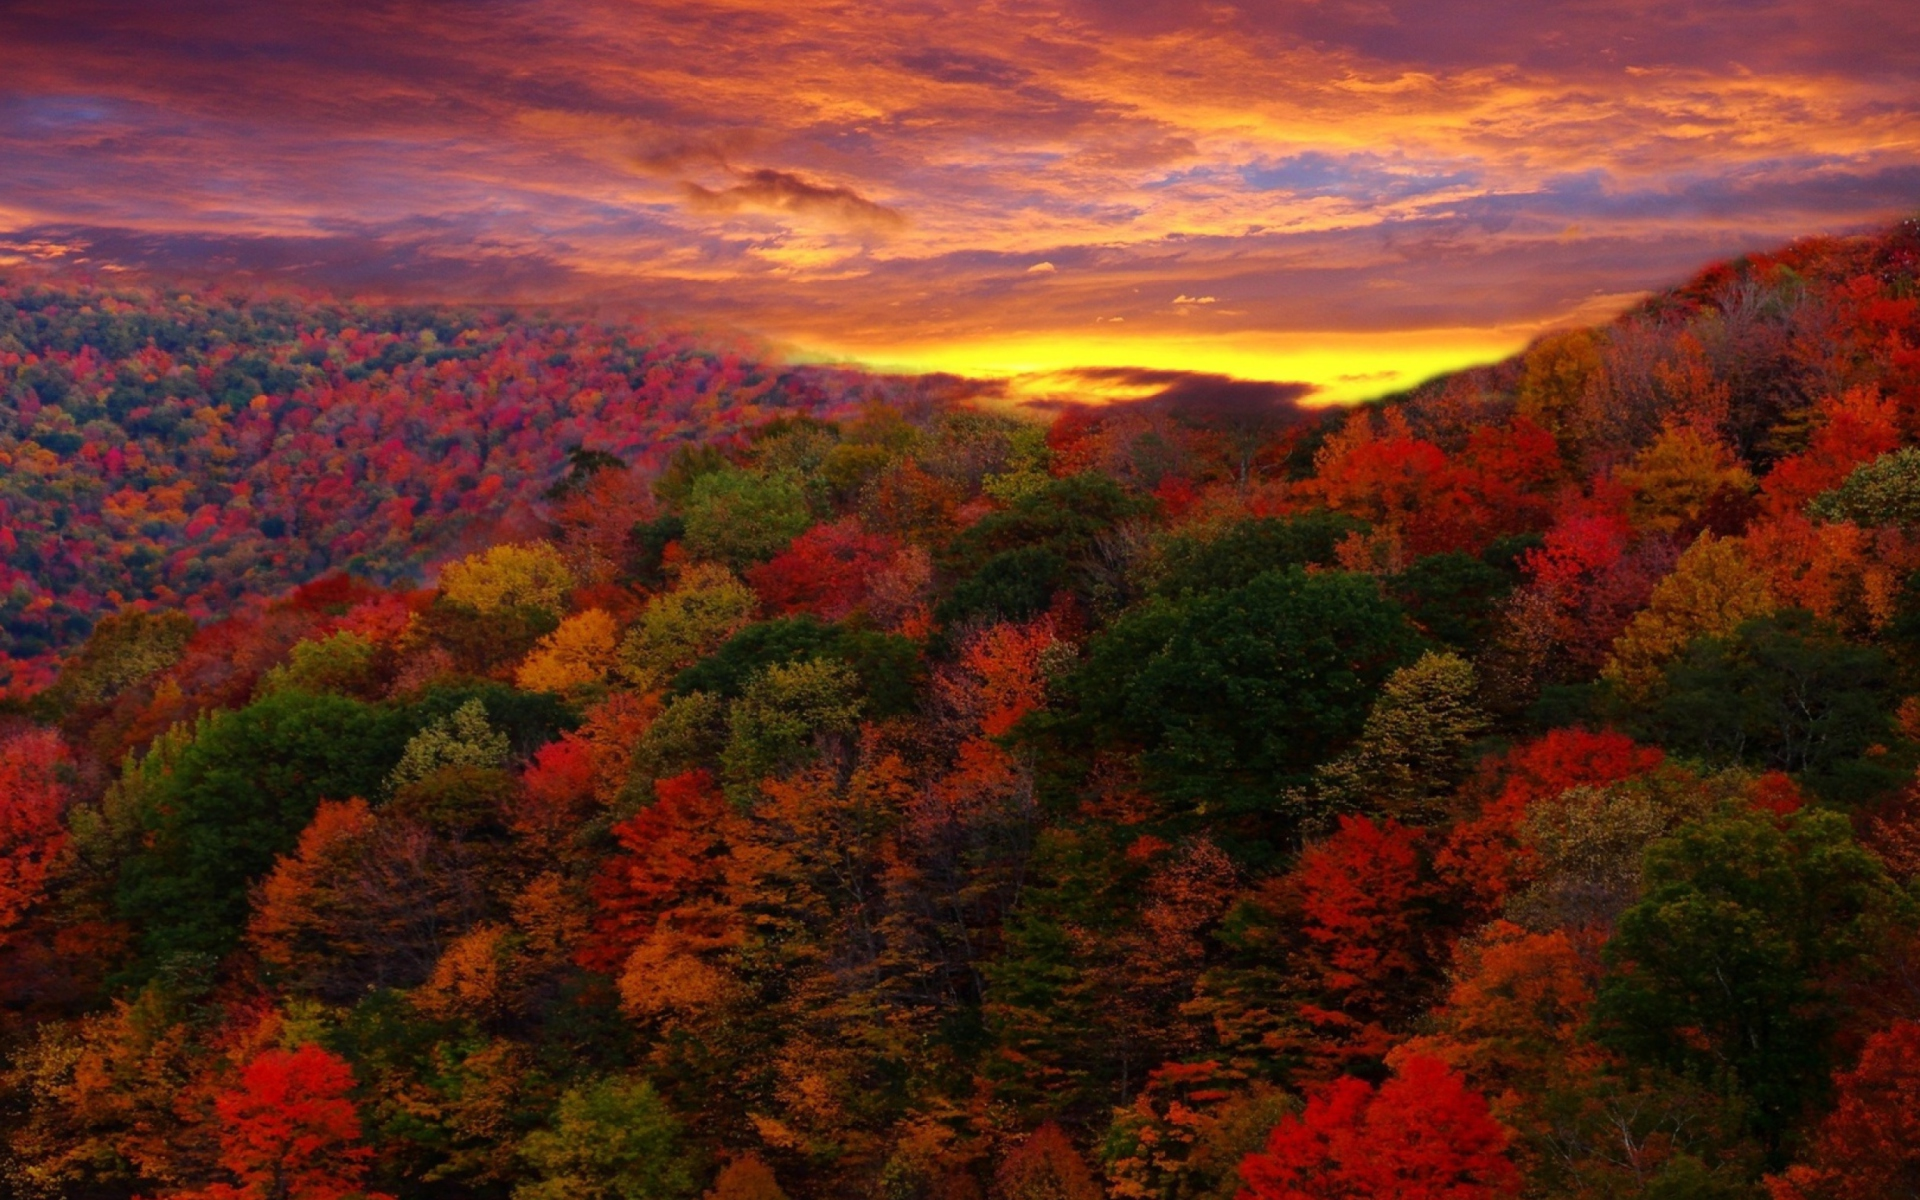 Sunset Over Autumn Forest Landscape Full HD Wallpaper And Background